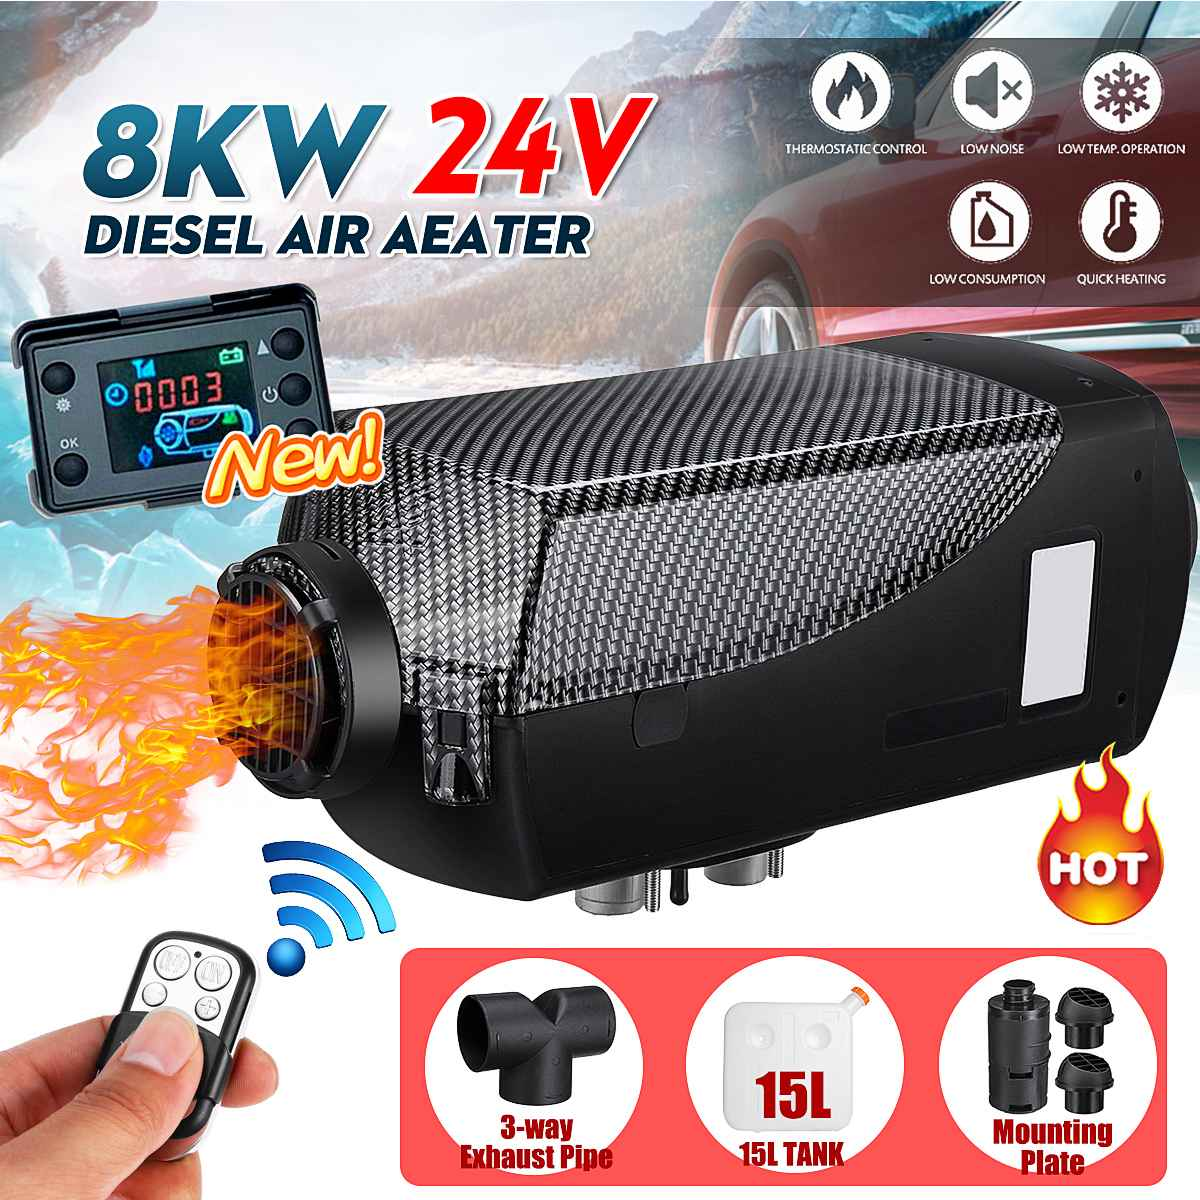 Car Heater 24V 8KW Air Diesel Parking Heater Car RV Motorhome Trailer Trucks Boats+LCD Switch Remote+<font><b>15L</b></font> <font><b>Tank</b></font>+Tee accessories image